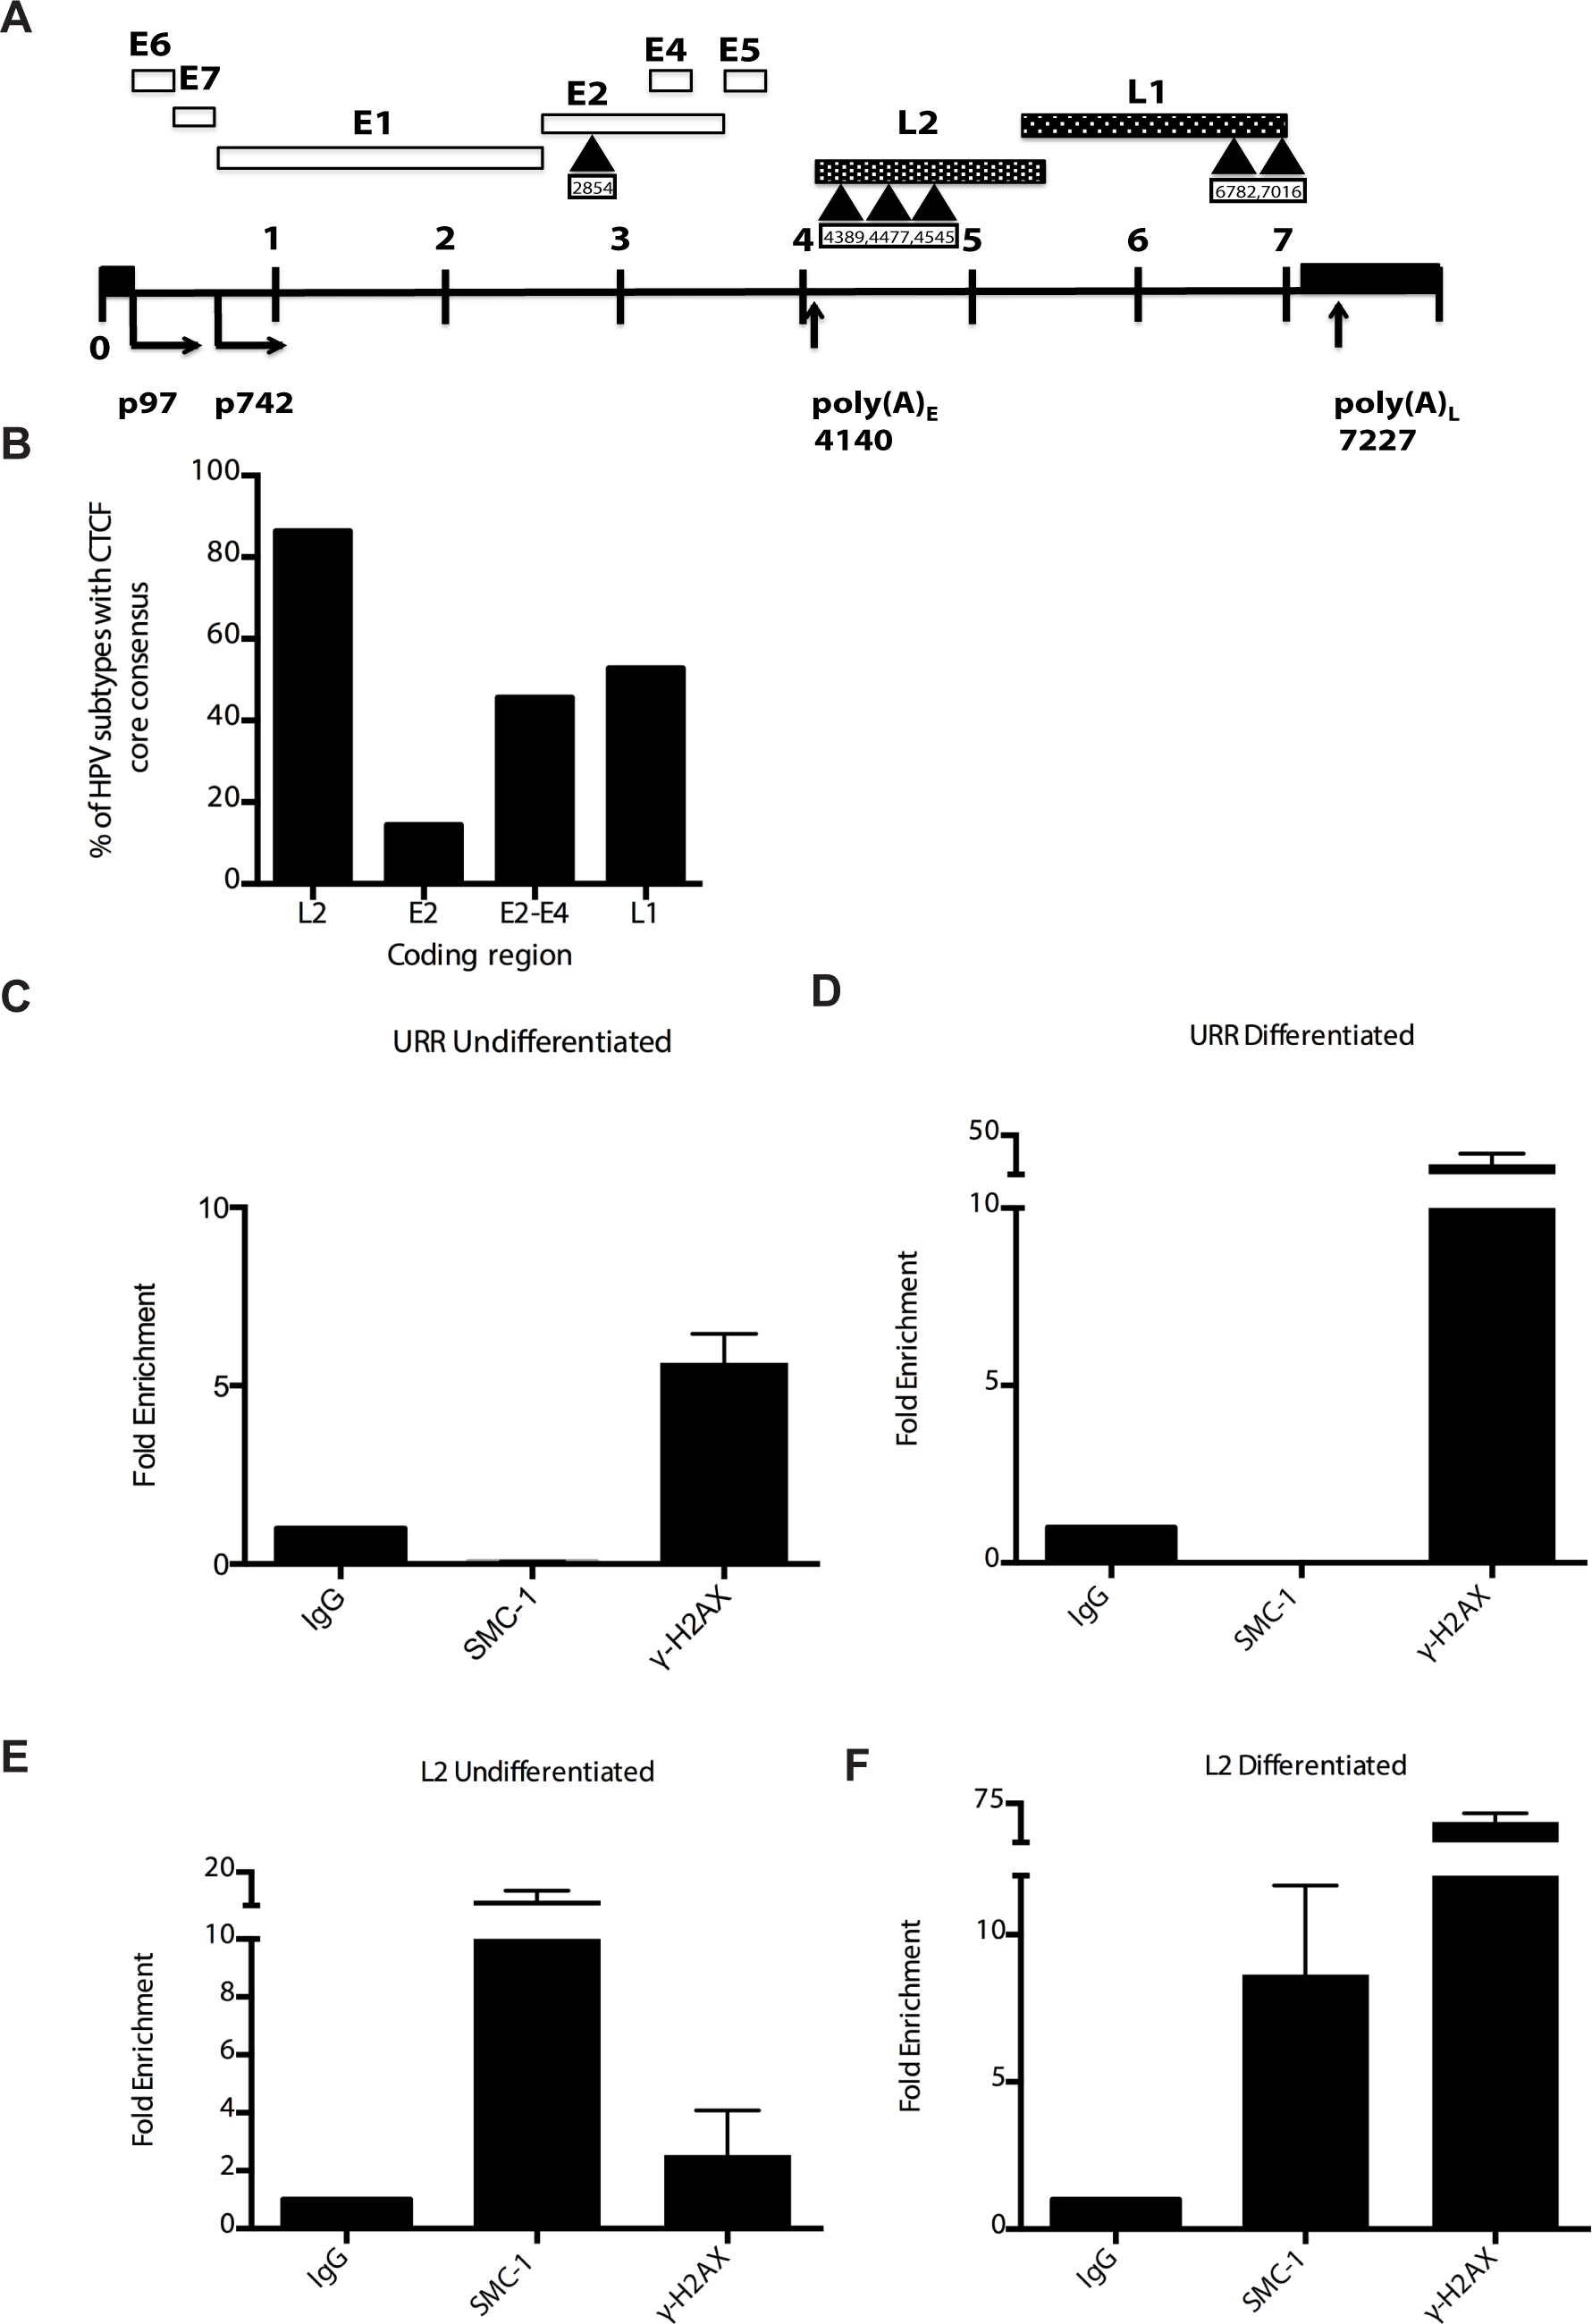 CTCF consensus motifs are found in HPV genomes.